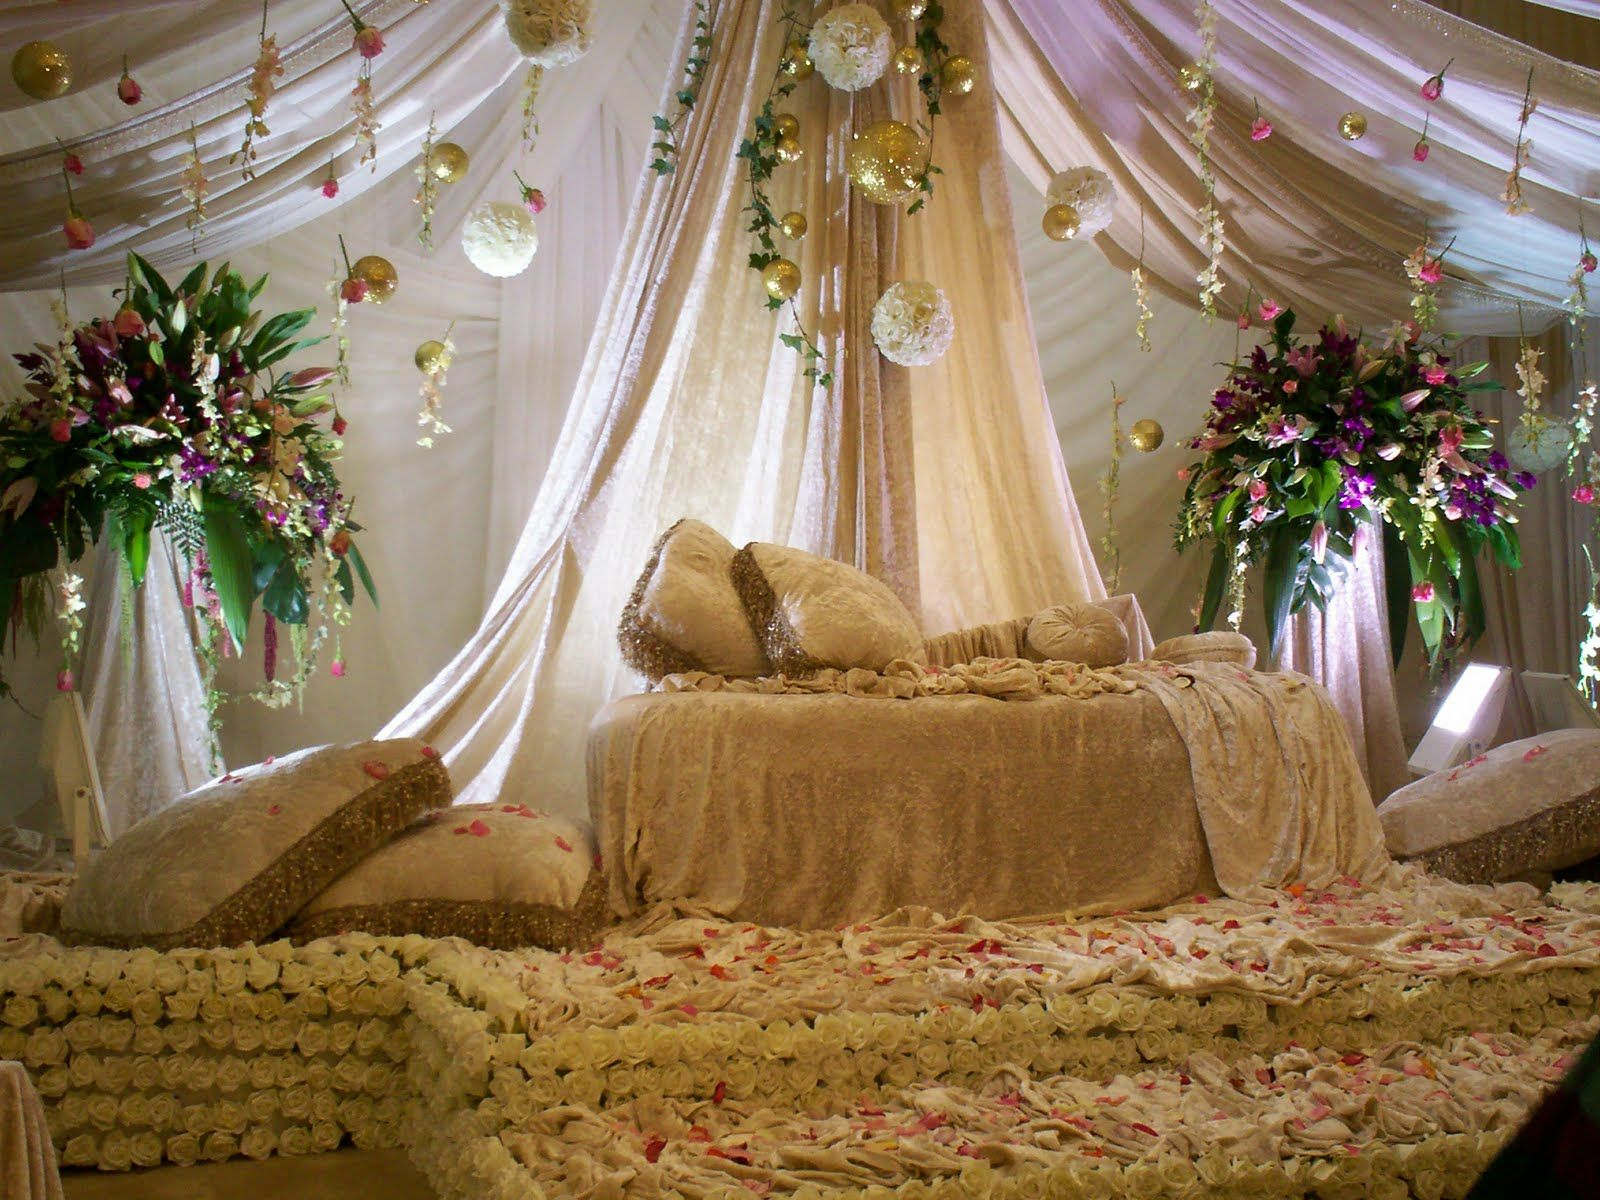 Bedroom decorating ideas for wedding night - Arabian Wedding Decoration I Can Just Envision Myself And Future Husband Being Fed With Grapes By The Best Man And Maid Of Honor